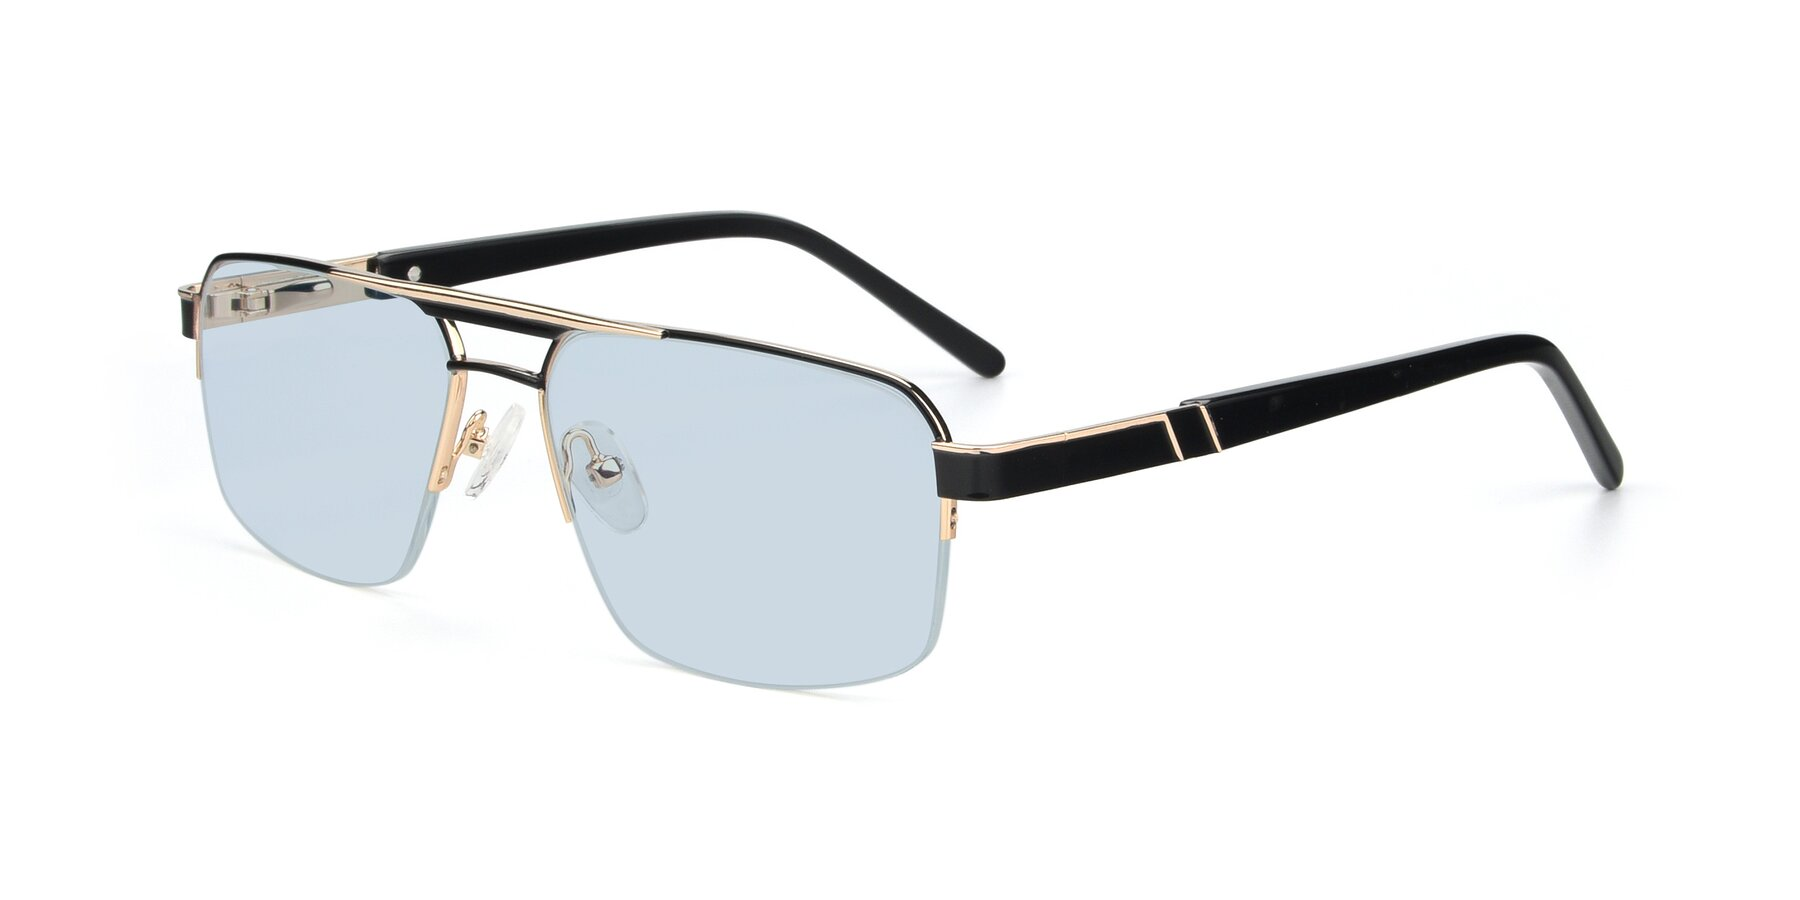 Angle of 19004 in Black-Gold with Light Blue Tinted Lenses